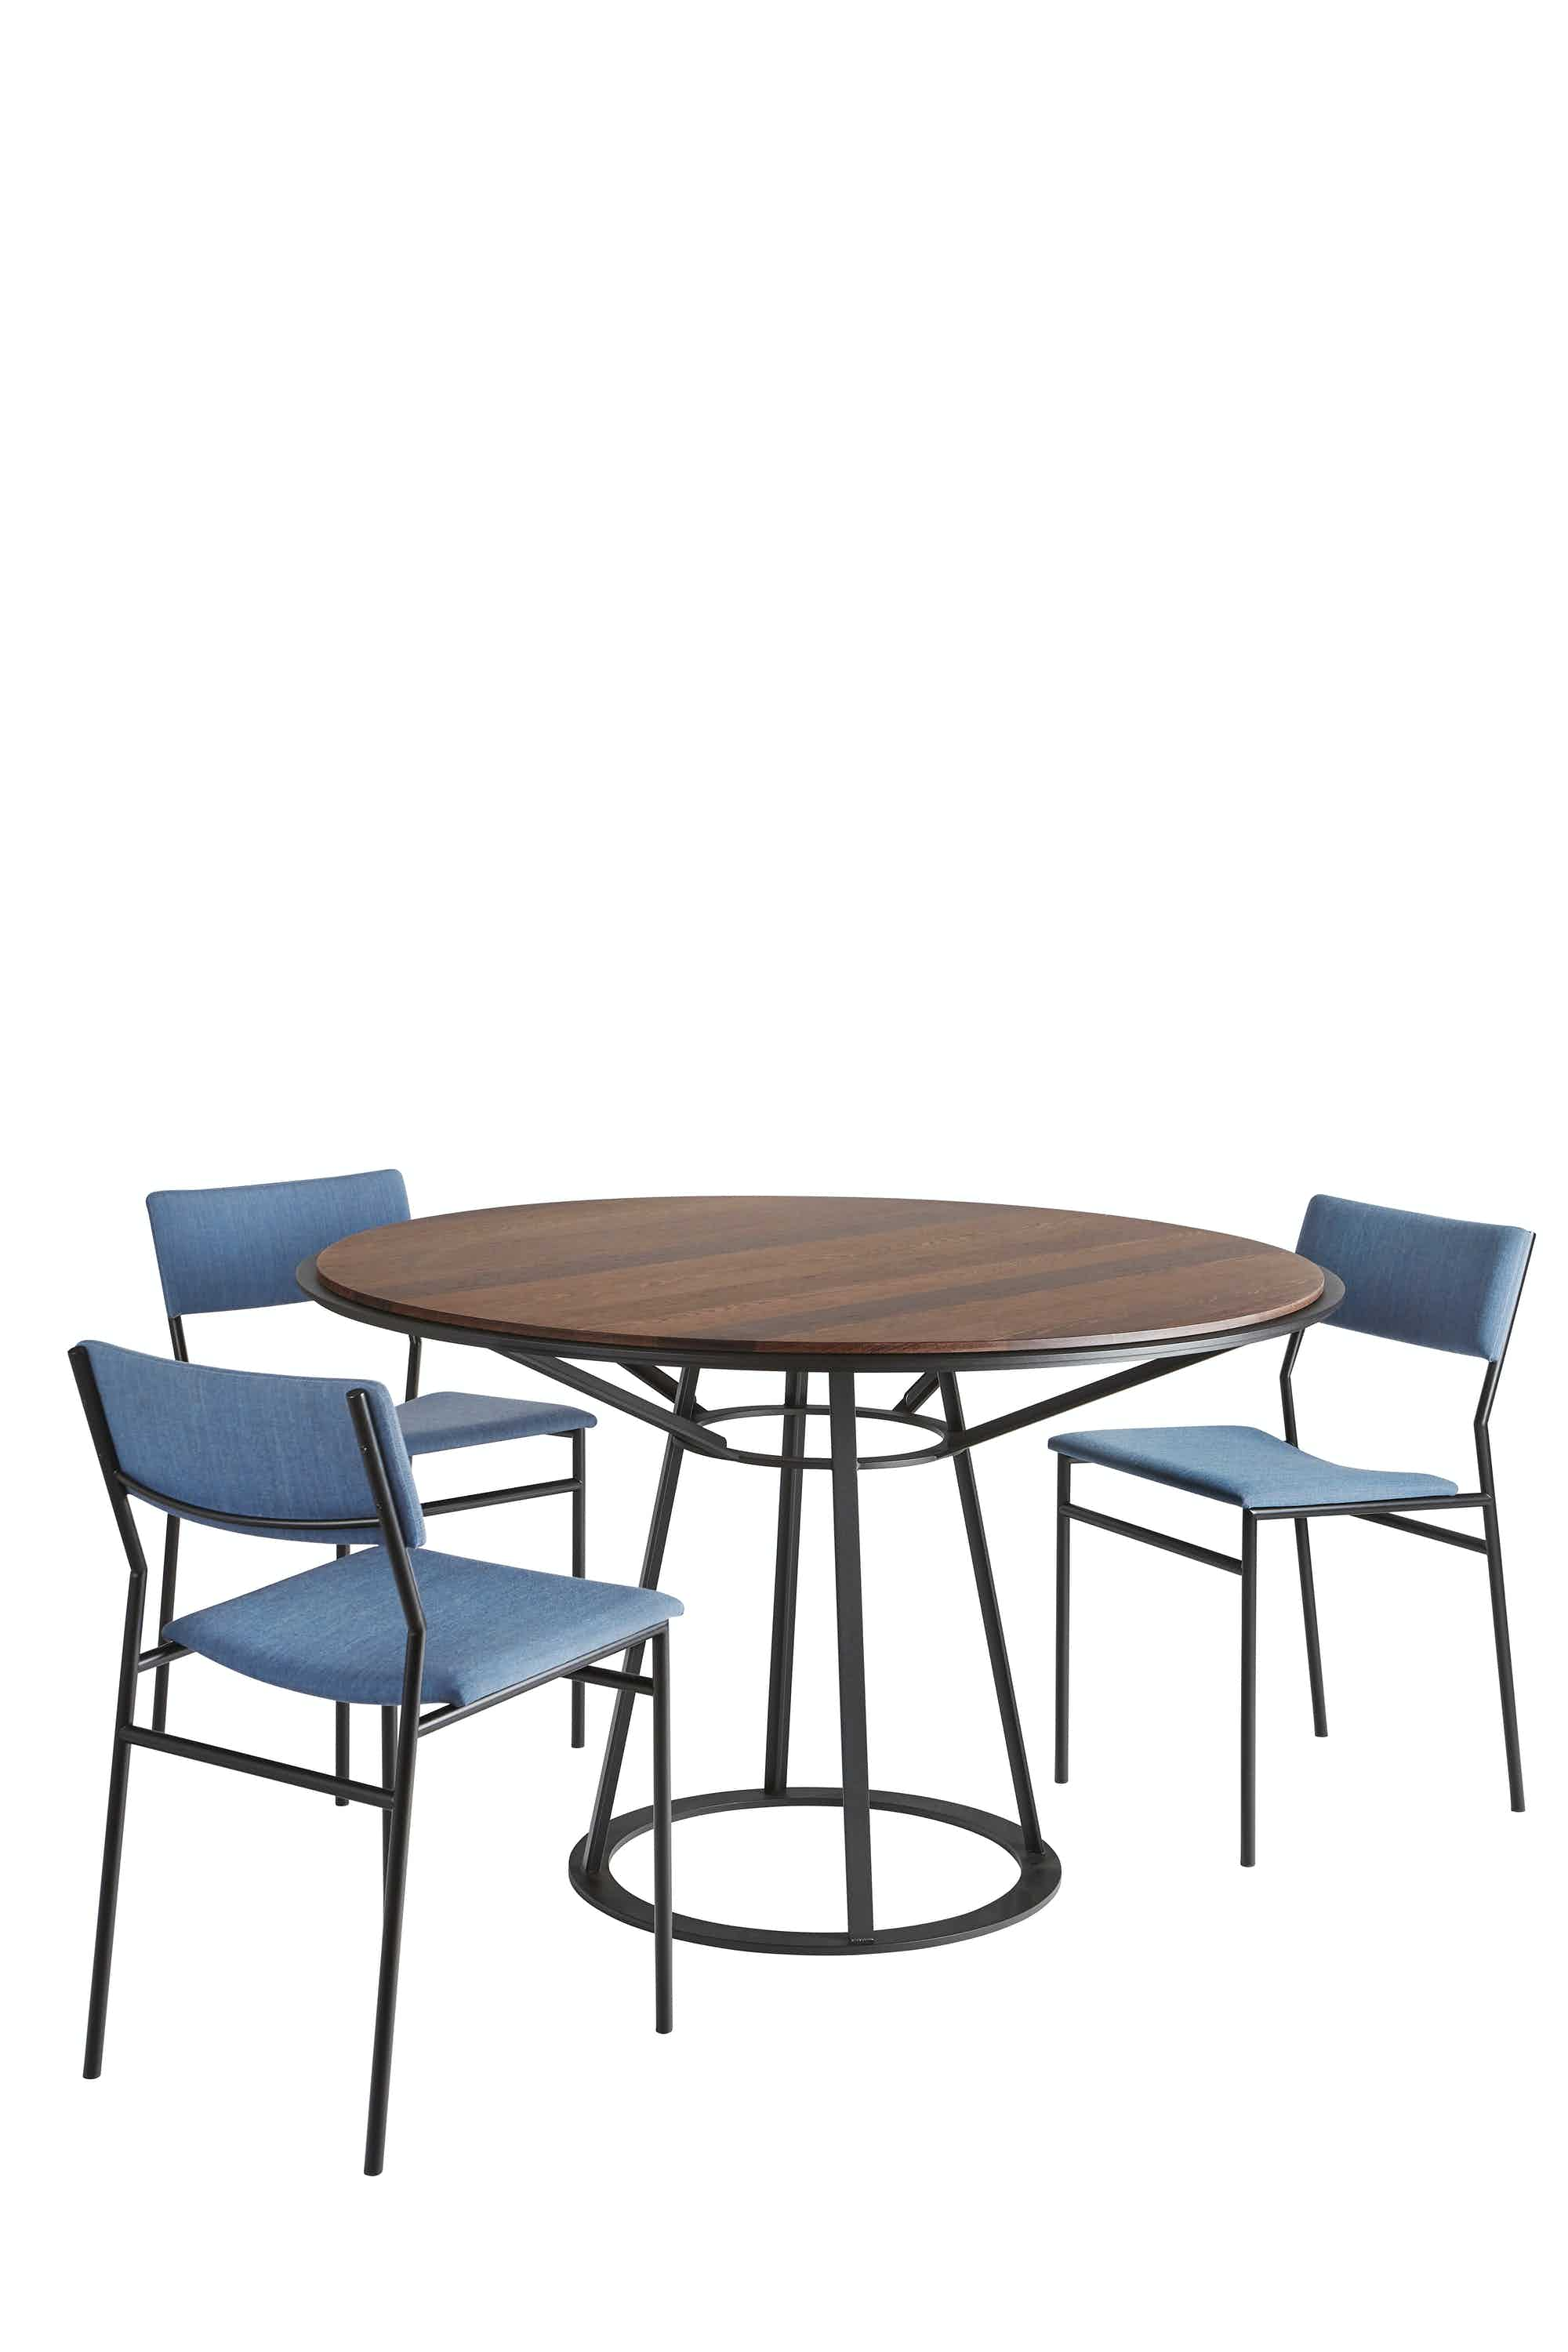 Spectrum Furniture Wenge With Chairs Endless Round Table Haute Living